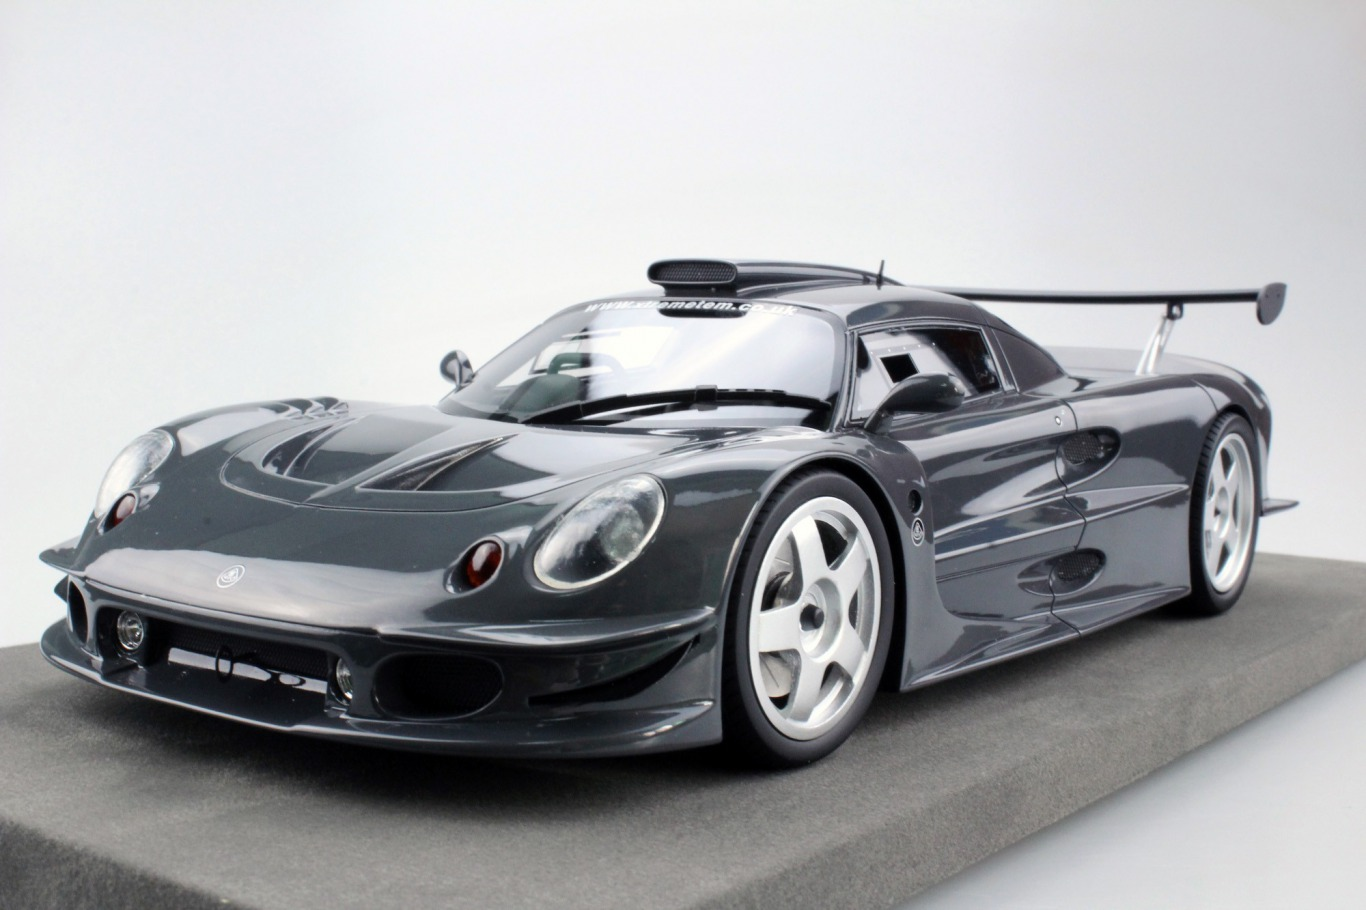 Topmarques 1:18 1997年モデル ロータス エリーゼ GT11997 LOTUS Elise GT1 1/18 by Topmarques NEW EUR